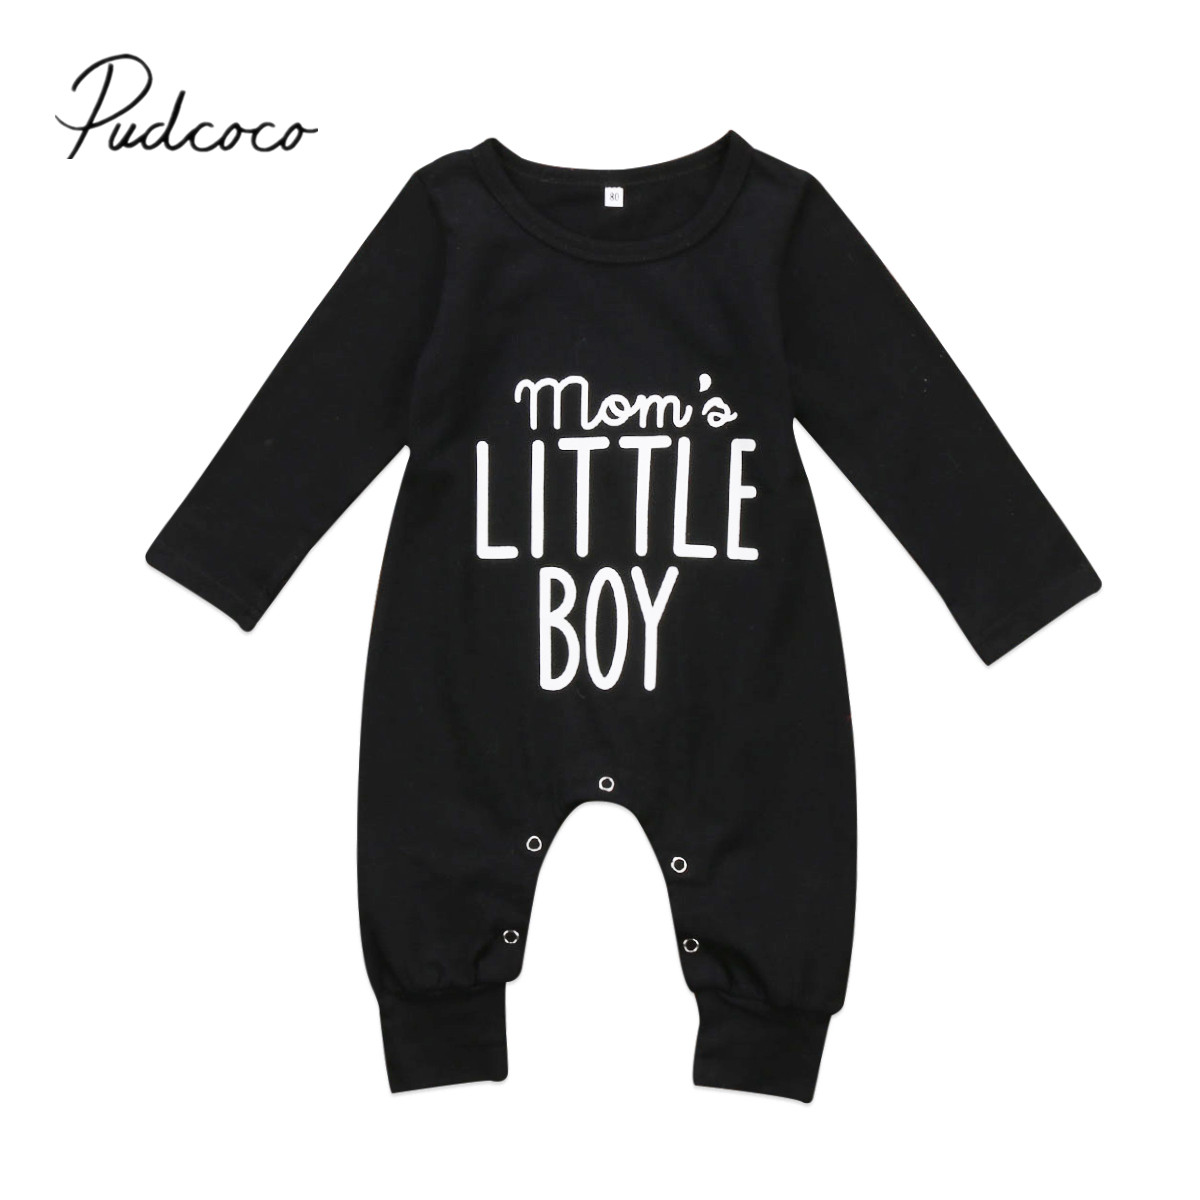 2017 Brand New Fashion Newborn Toddler Infant Baby Boys Romper Long Sleeve Jumpsuit Playsuit Little Boy Outfits Black Clothes